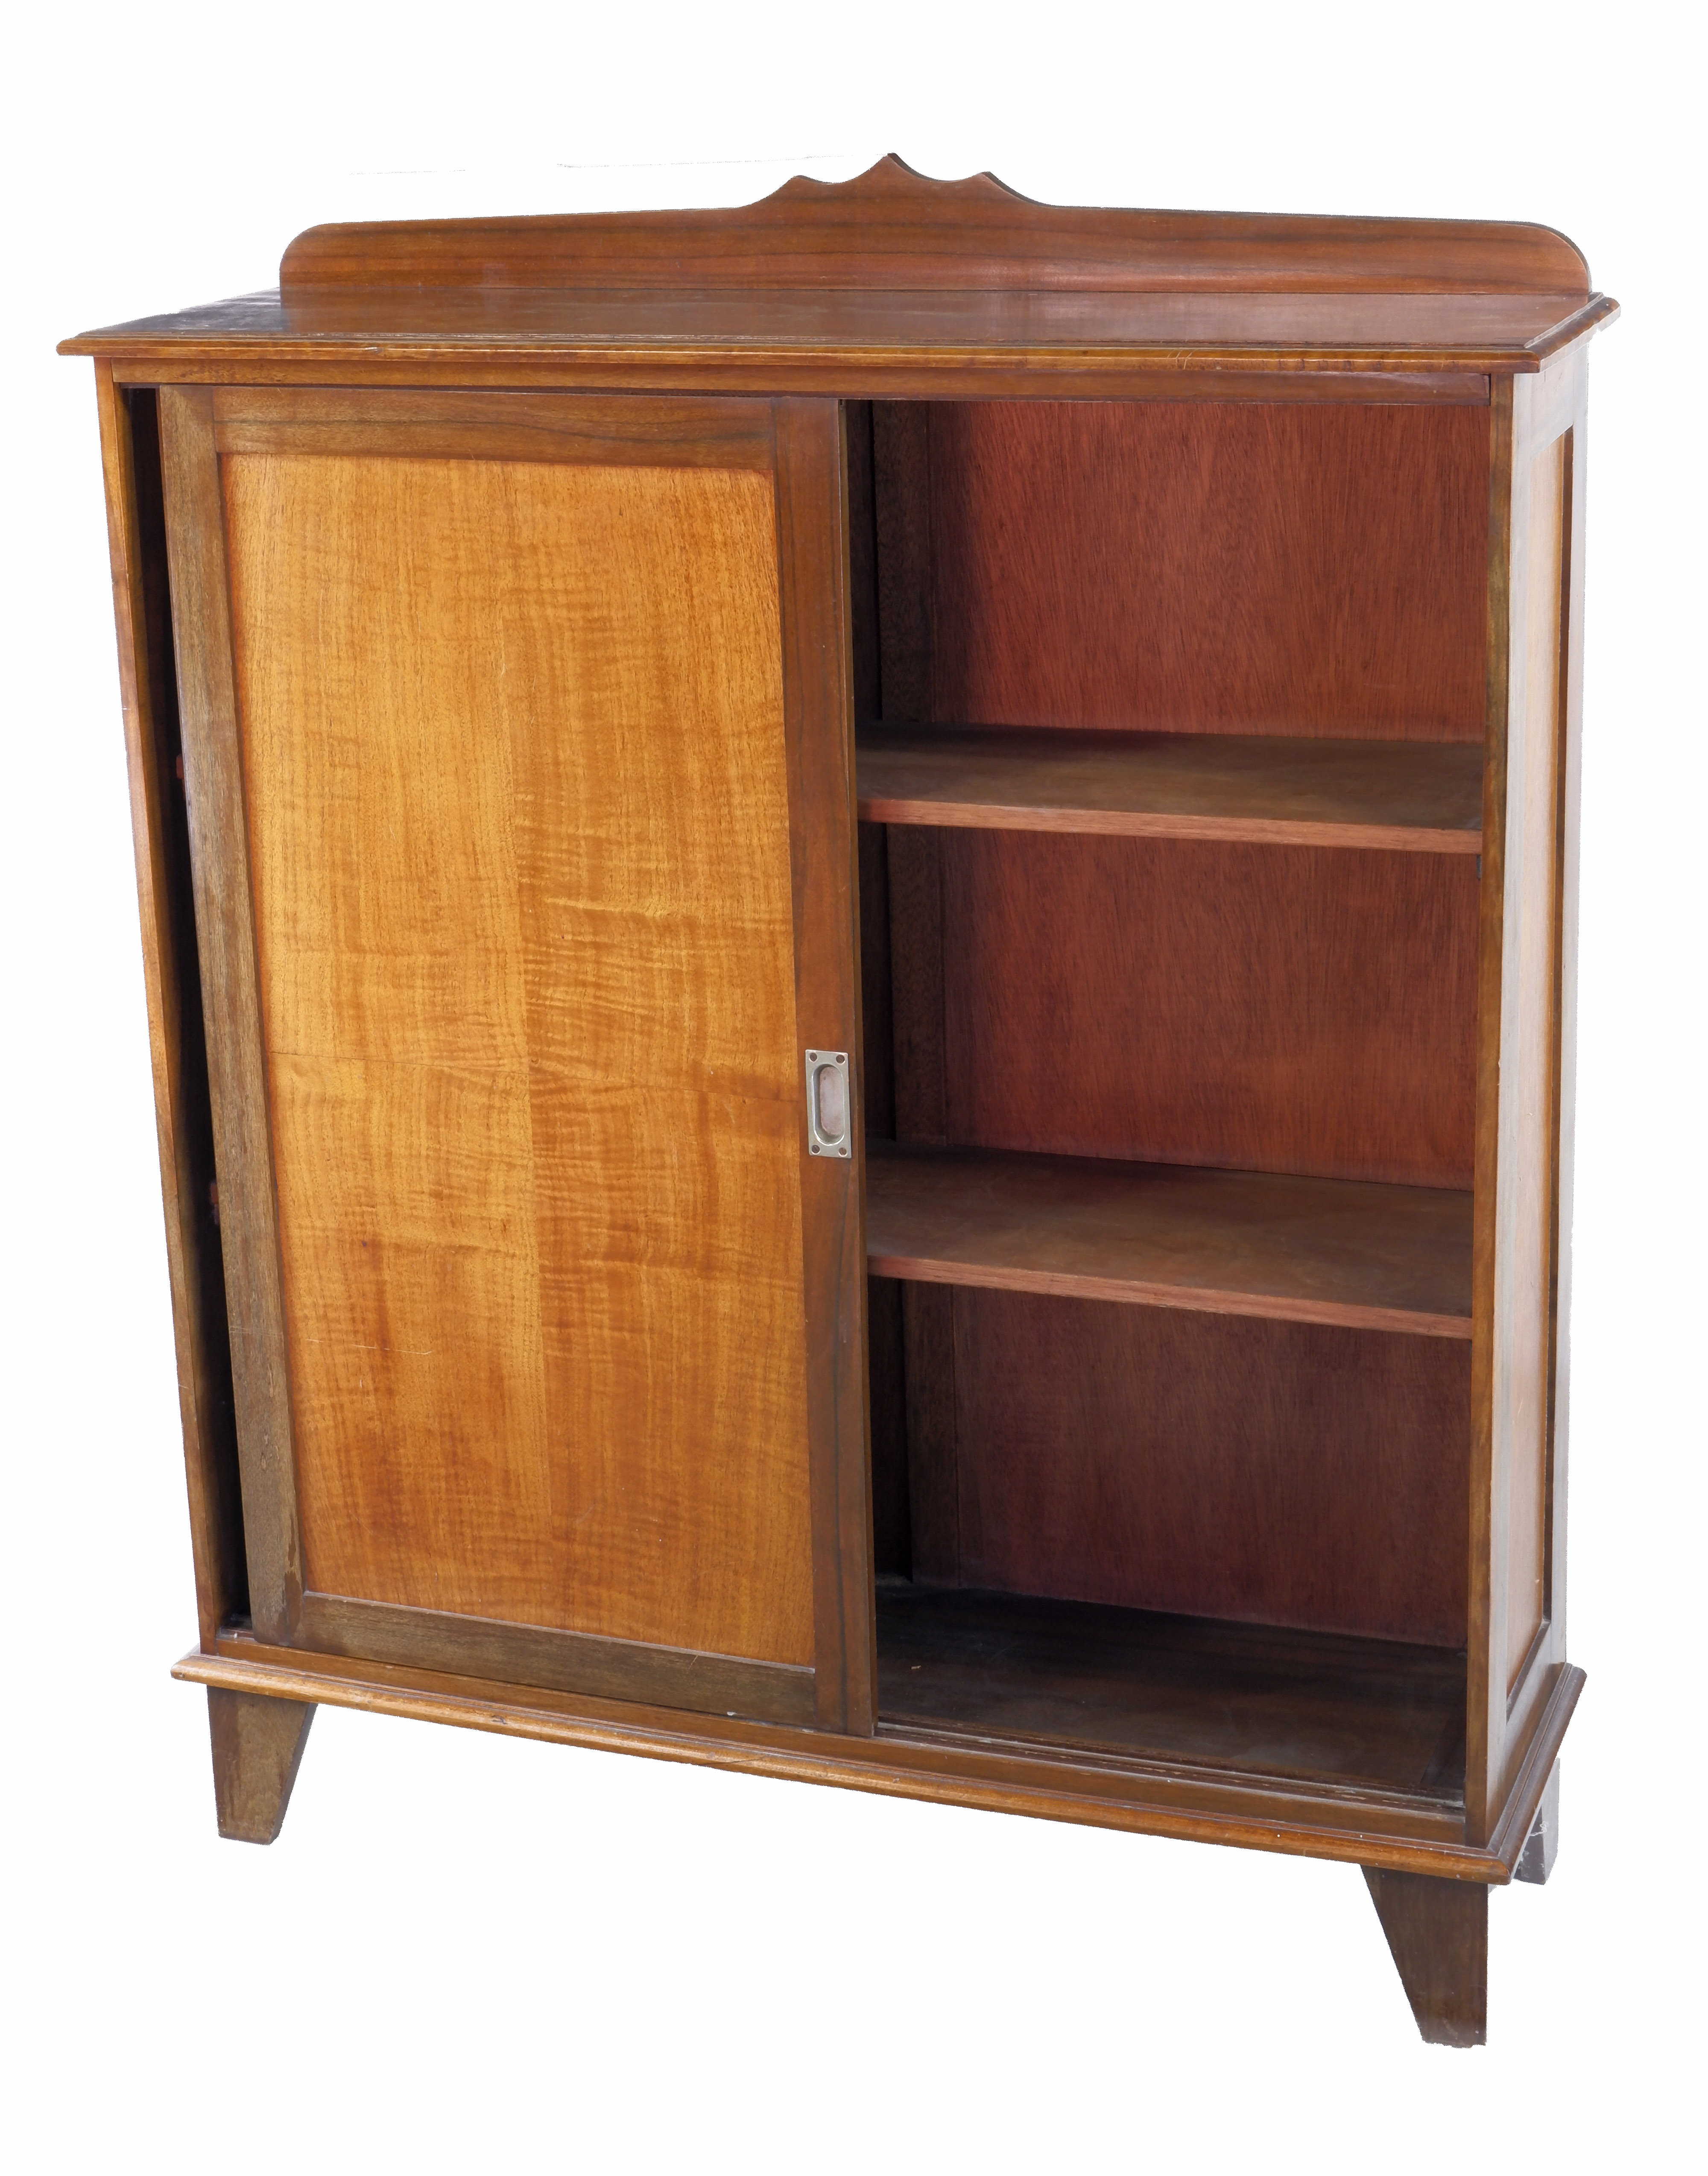 Queensland Maple And Black Walnut Bookcase With Sliding Doors Circa 1940s